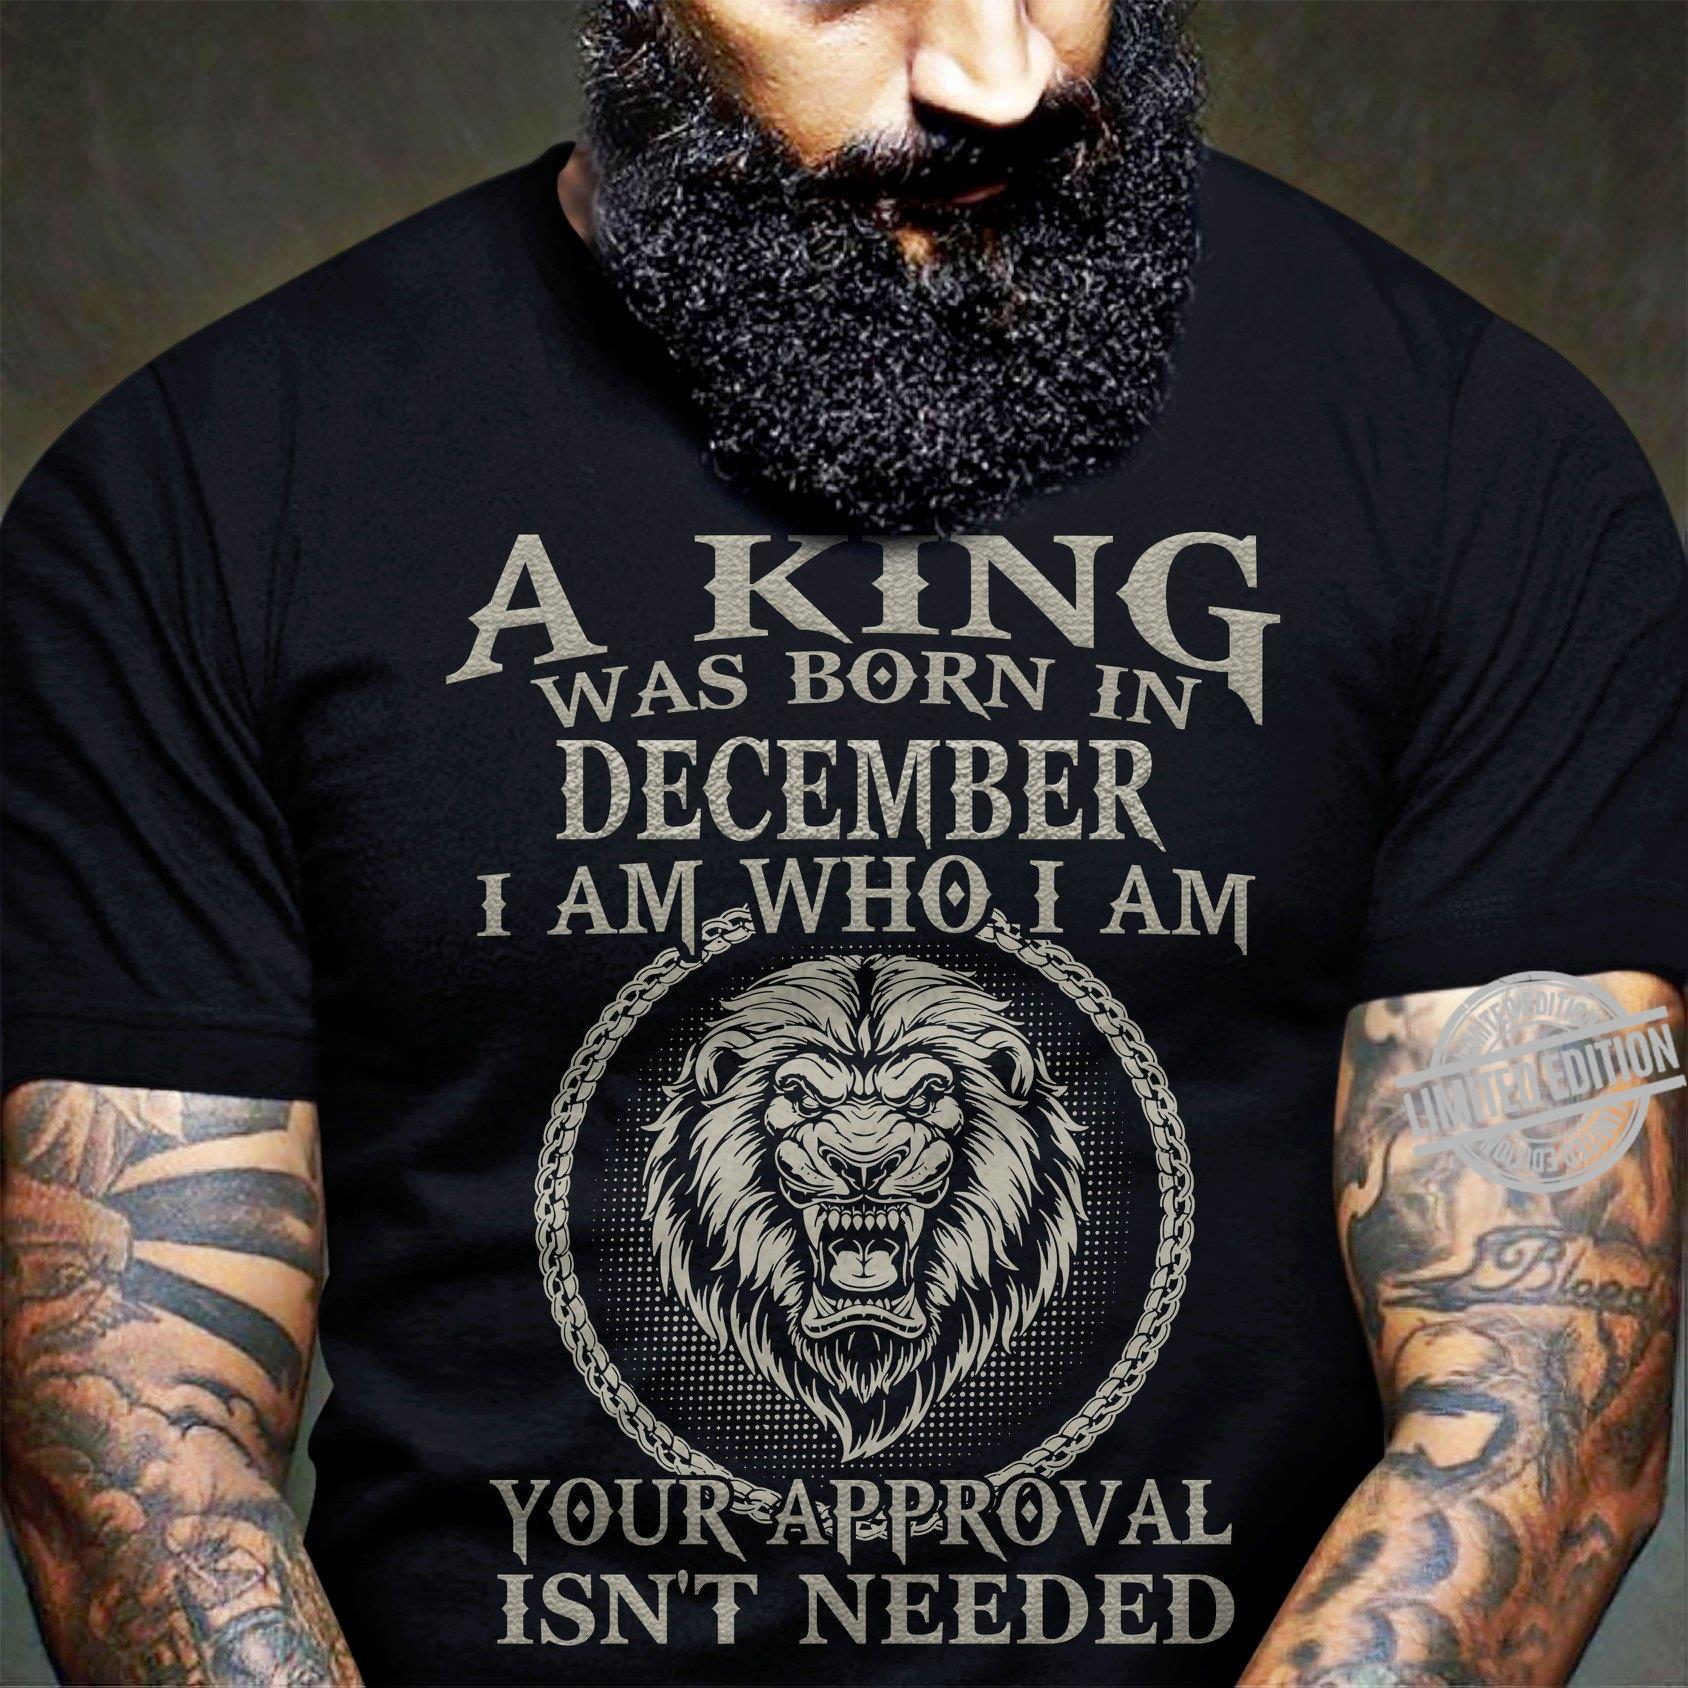 A King Was Born In December I Am Who I Am Your Approval Isn't Needed Shirt